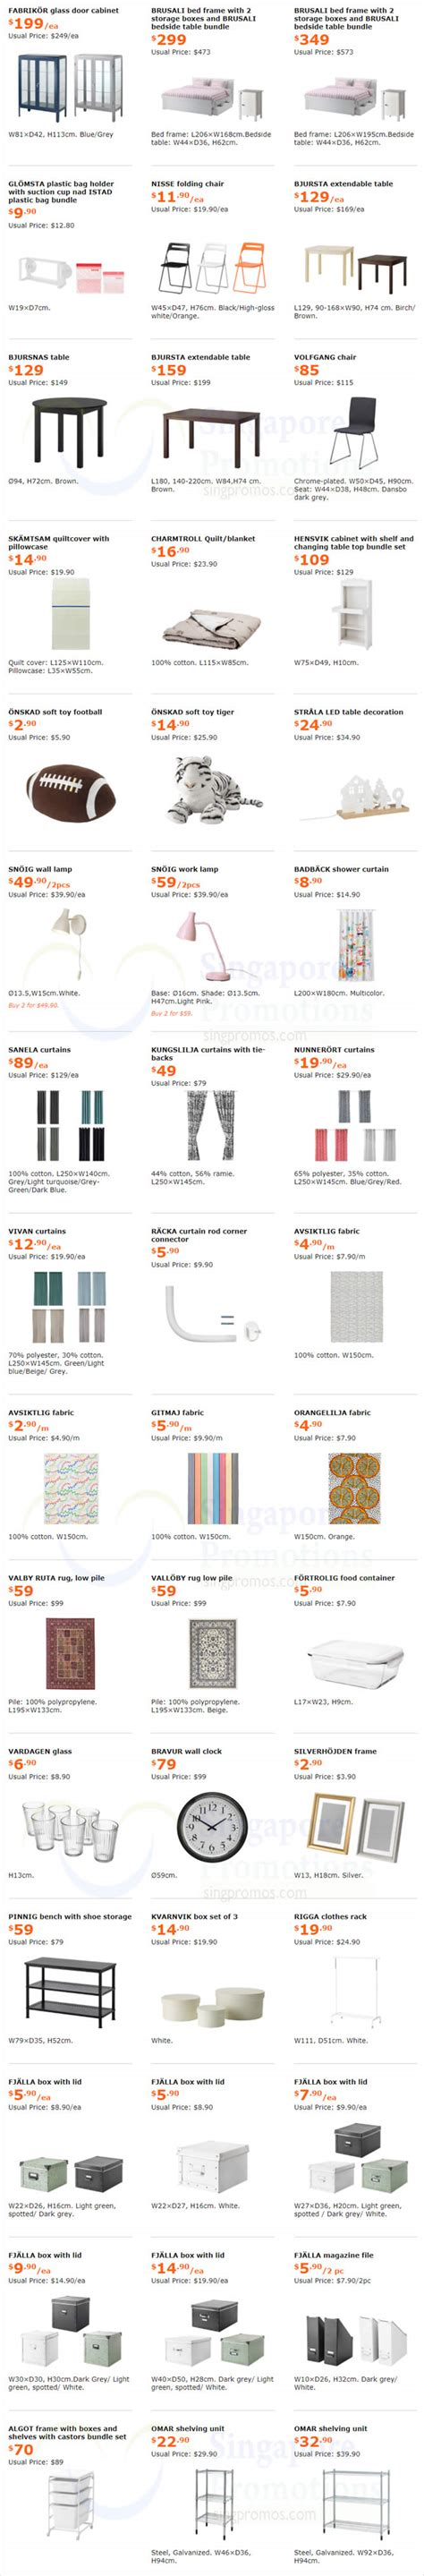 Special Bedside Caddy Organizer Organizer Sing Ranjang Terlaris ikea save up to 224 on selected items offers valid from 4 31 dec 2017